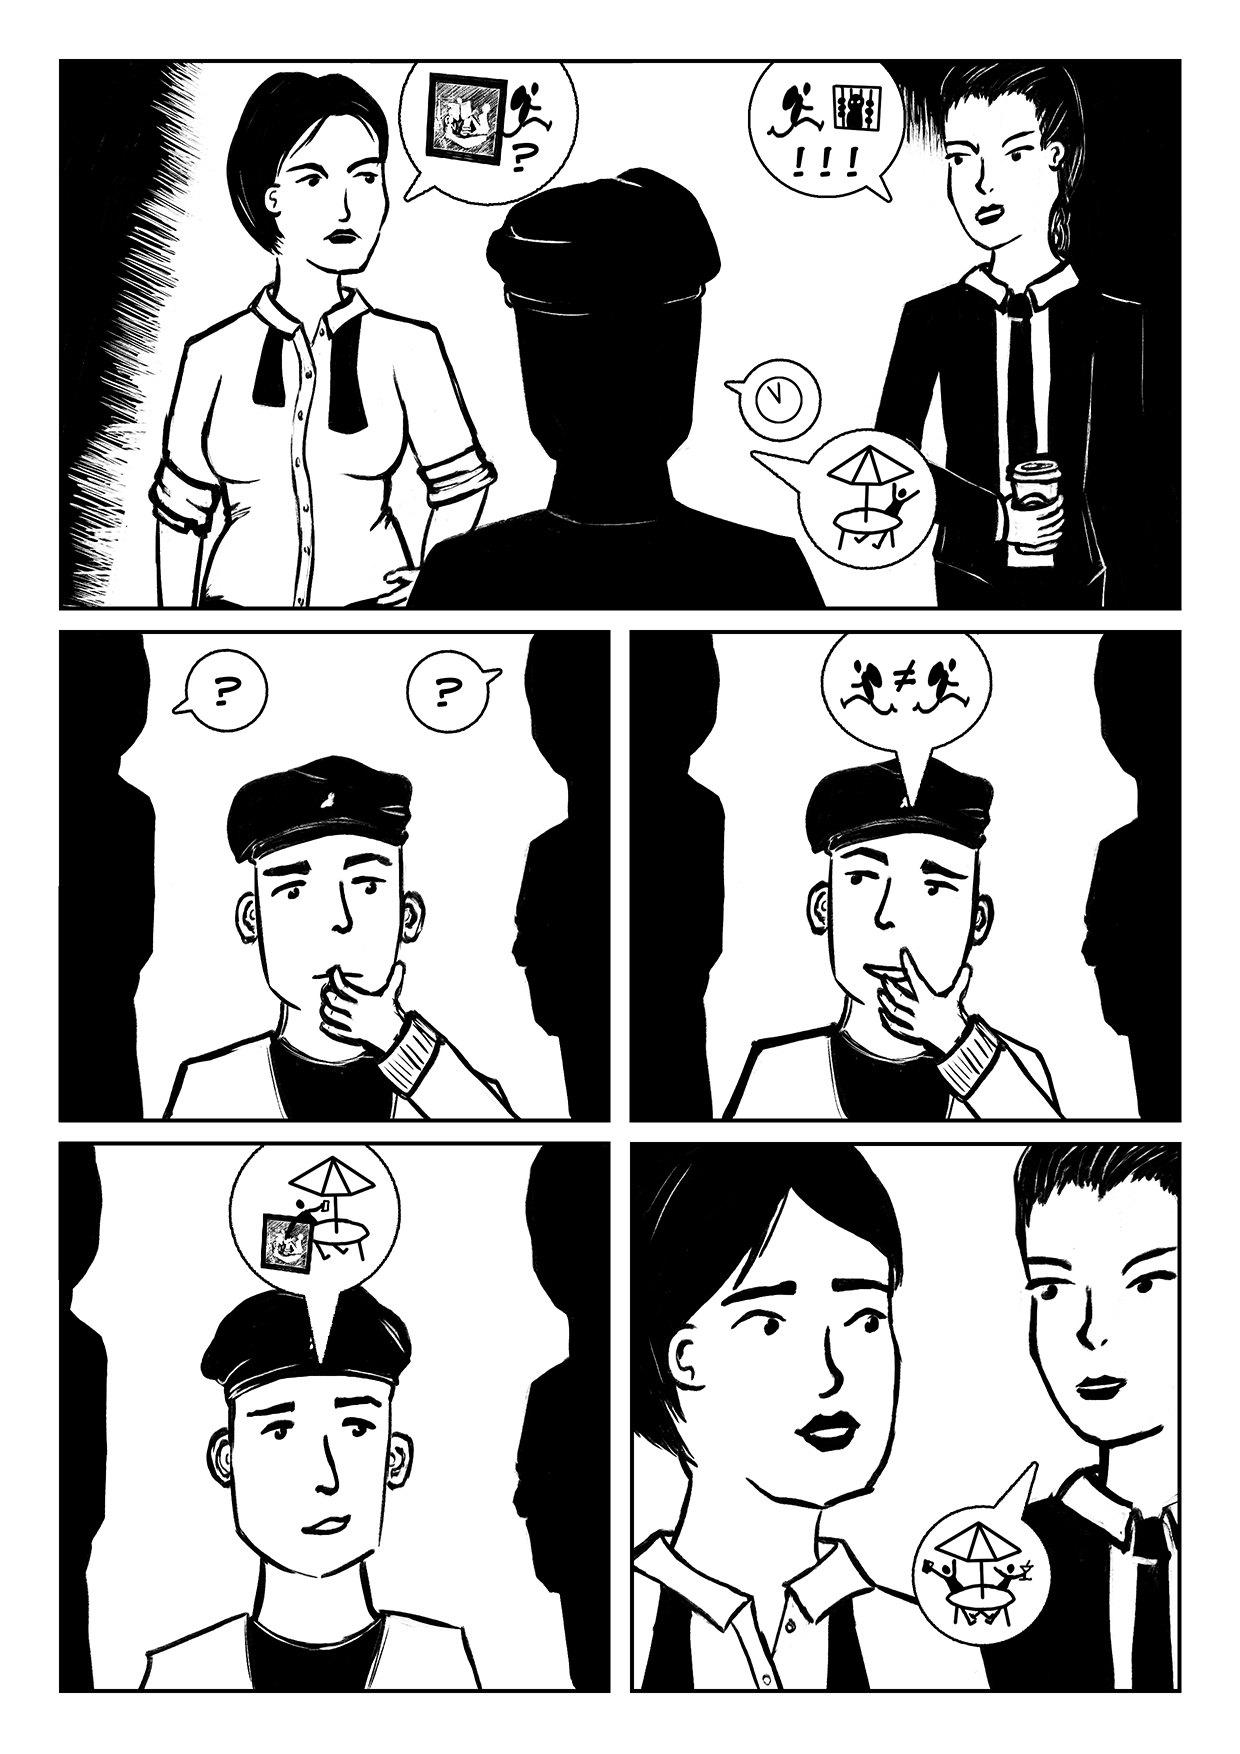 Holiday Heist Comic page 3, a comic about two detectives tracking down an art thief.